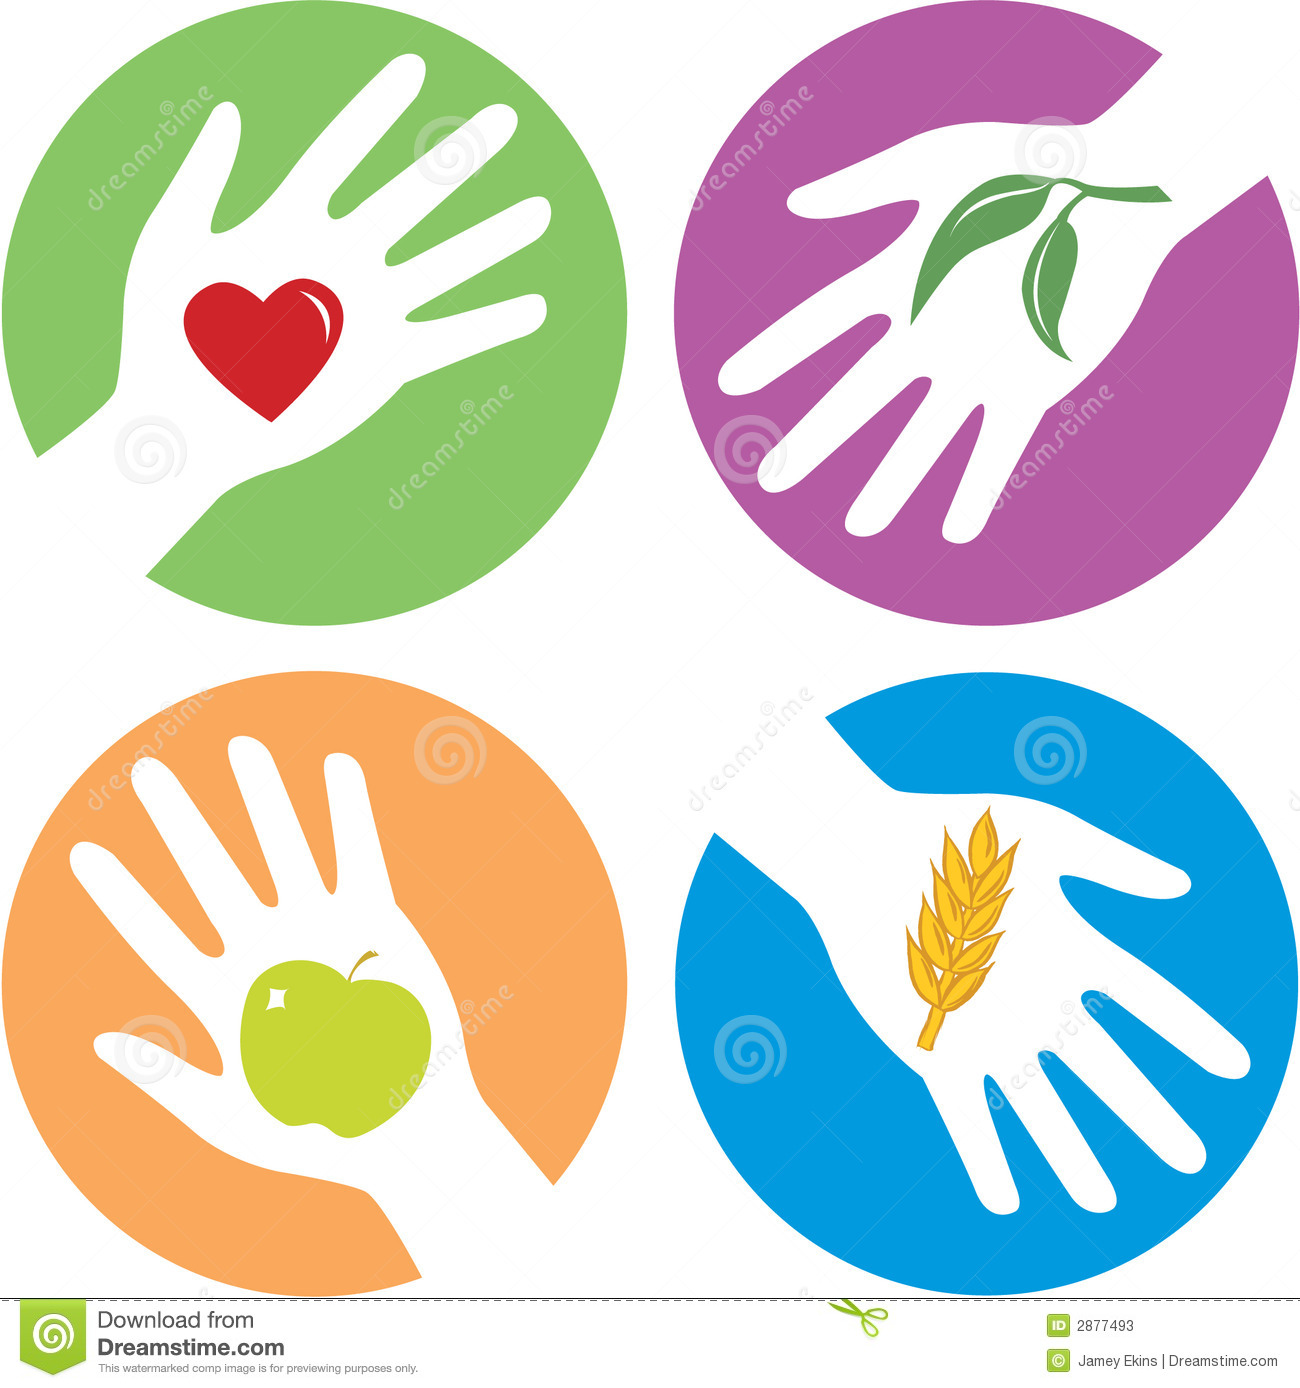 health-related-helping-hands-2877493.jpg